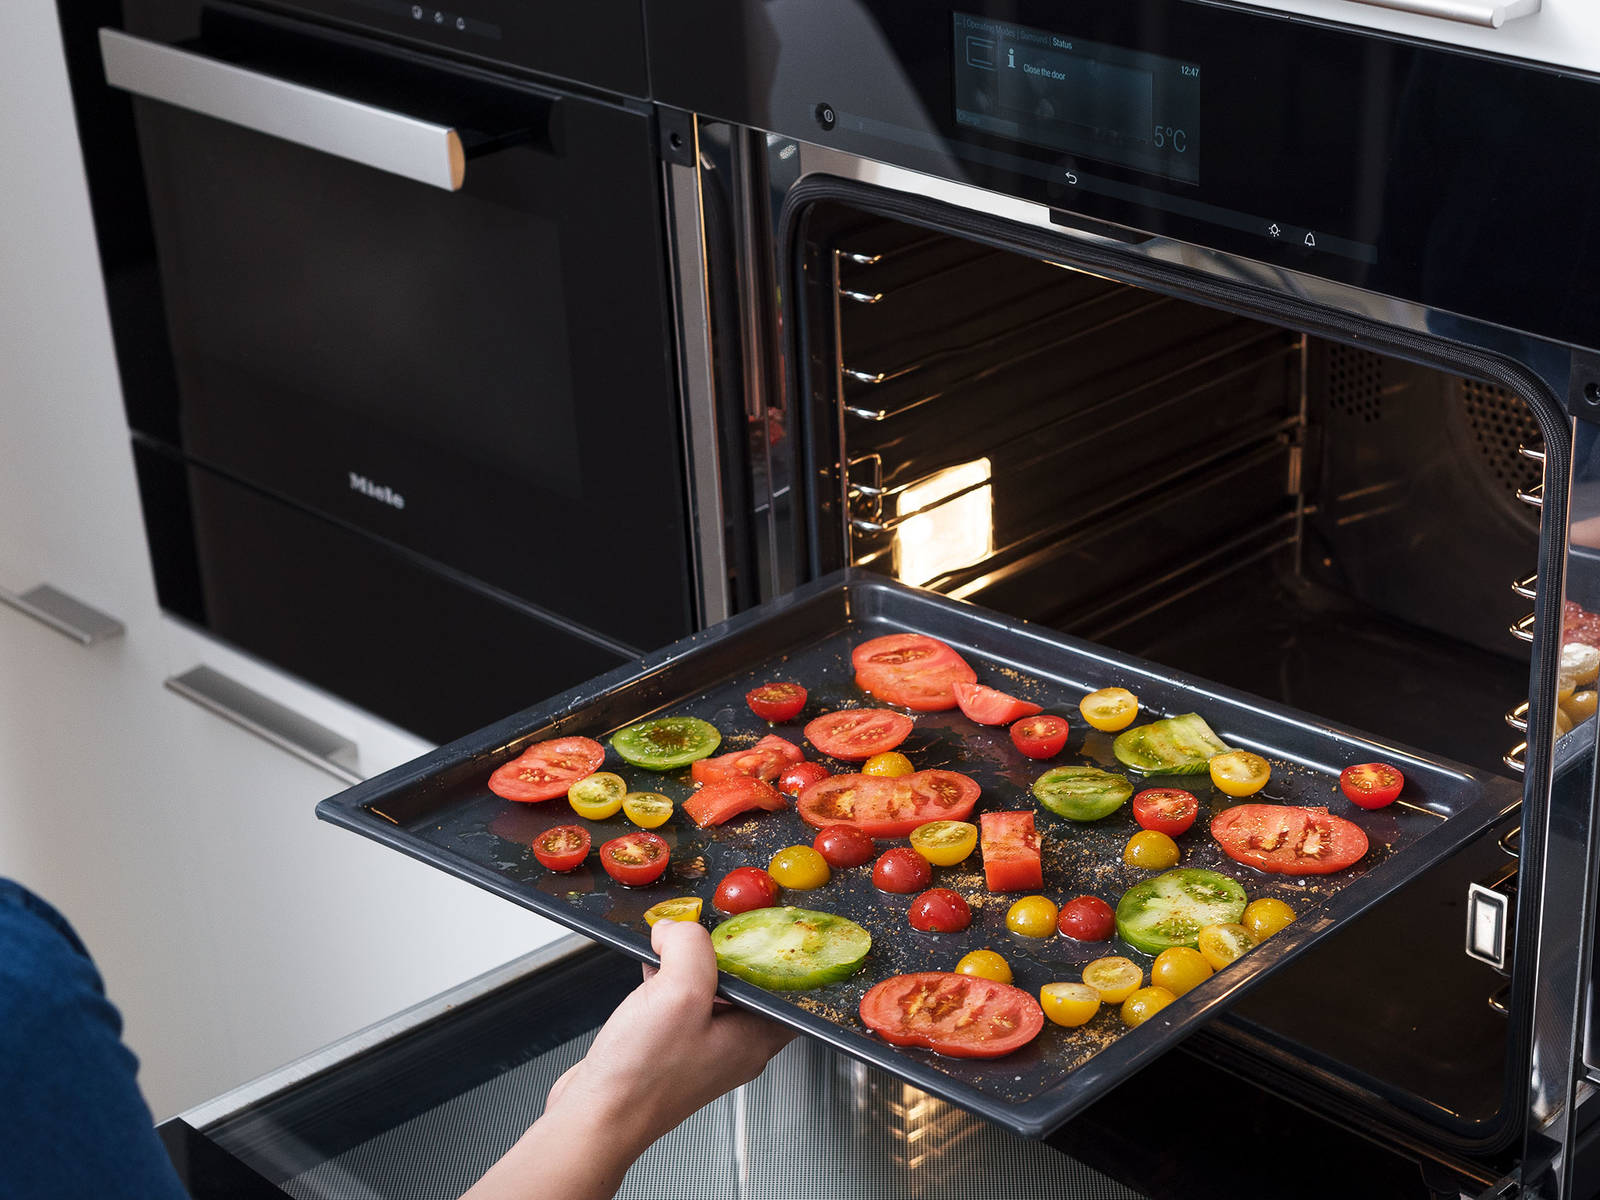 Preheat oven to 175°C/350°F. Depending on size, slice or halve the tomatoes and lay half of them them on a baking sheet, and sprinkle with olive oil, sugar, and some salt. Roast the tomatoes on the middle rack of the oven for approx. 35 – 45 min., or once caramelized and slightly shriveled. Set aside to cool.